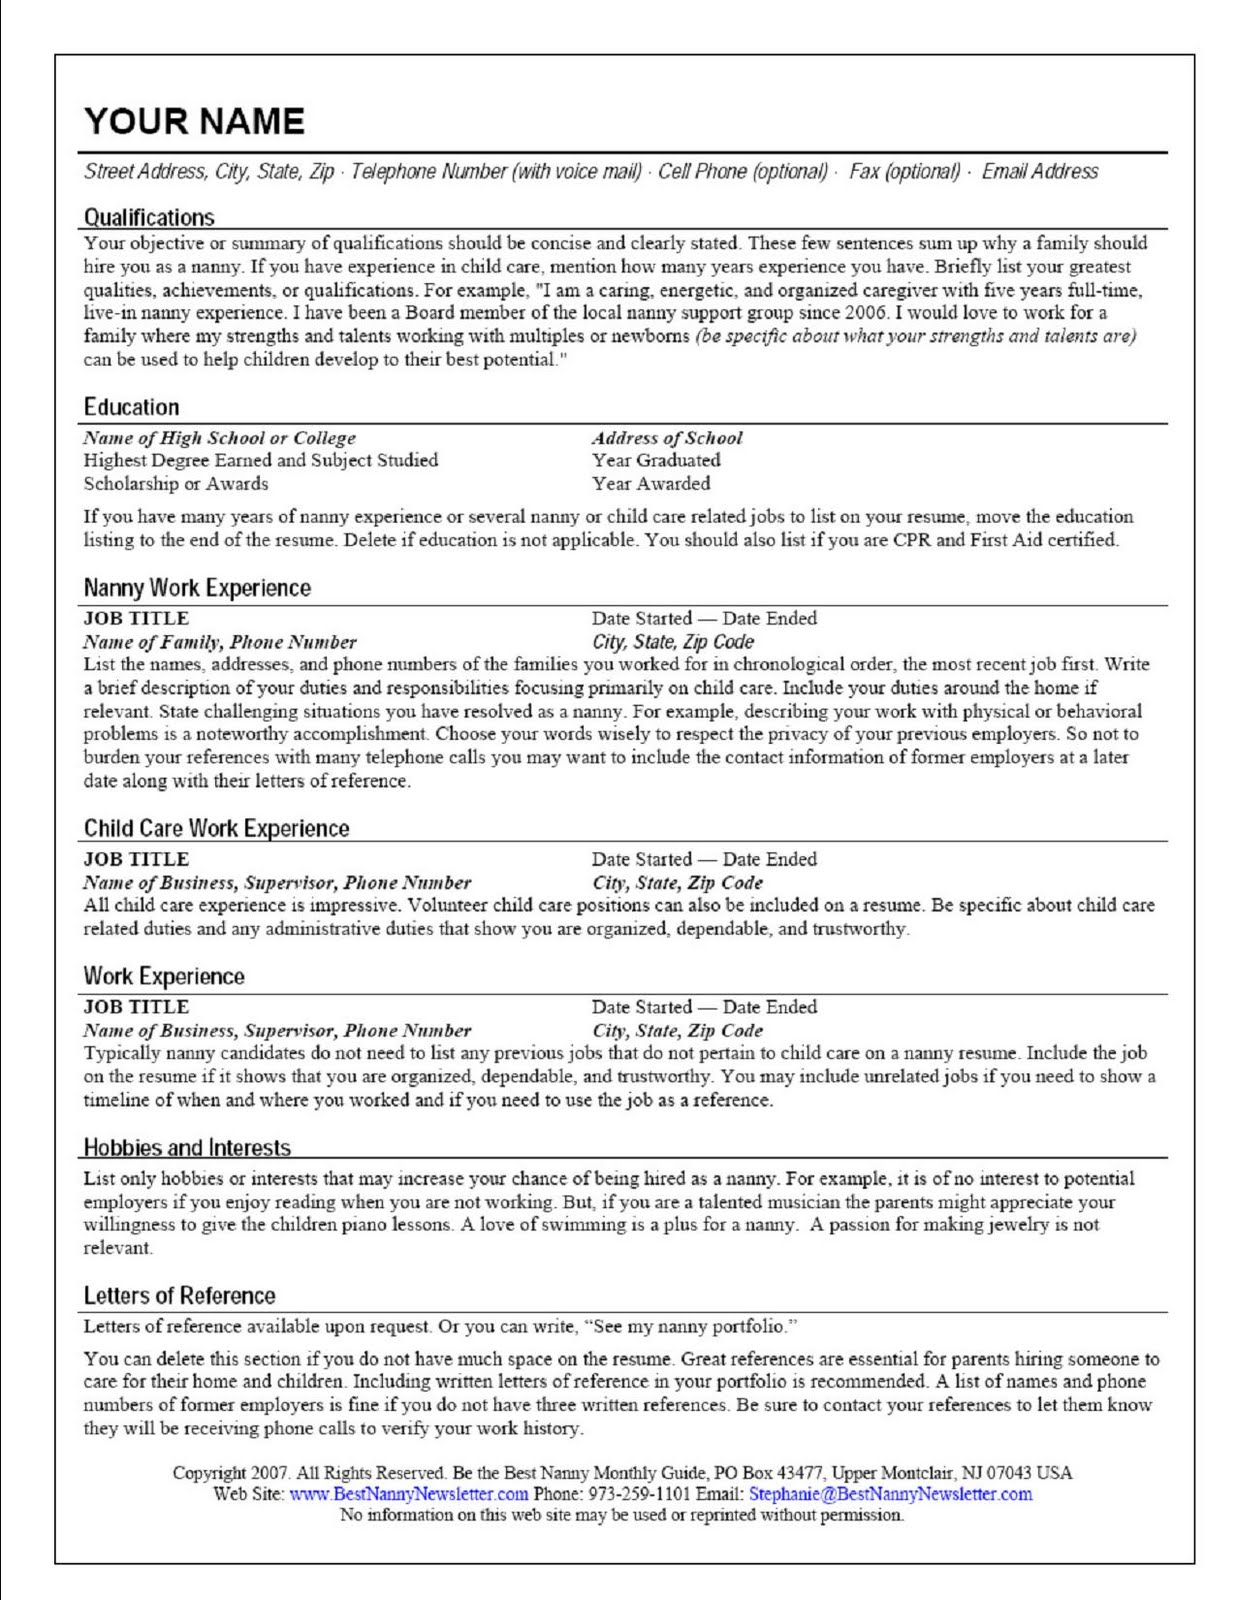 Creating A Nanny Resume